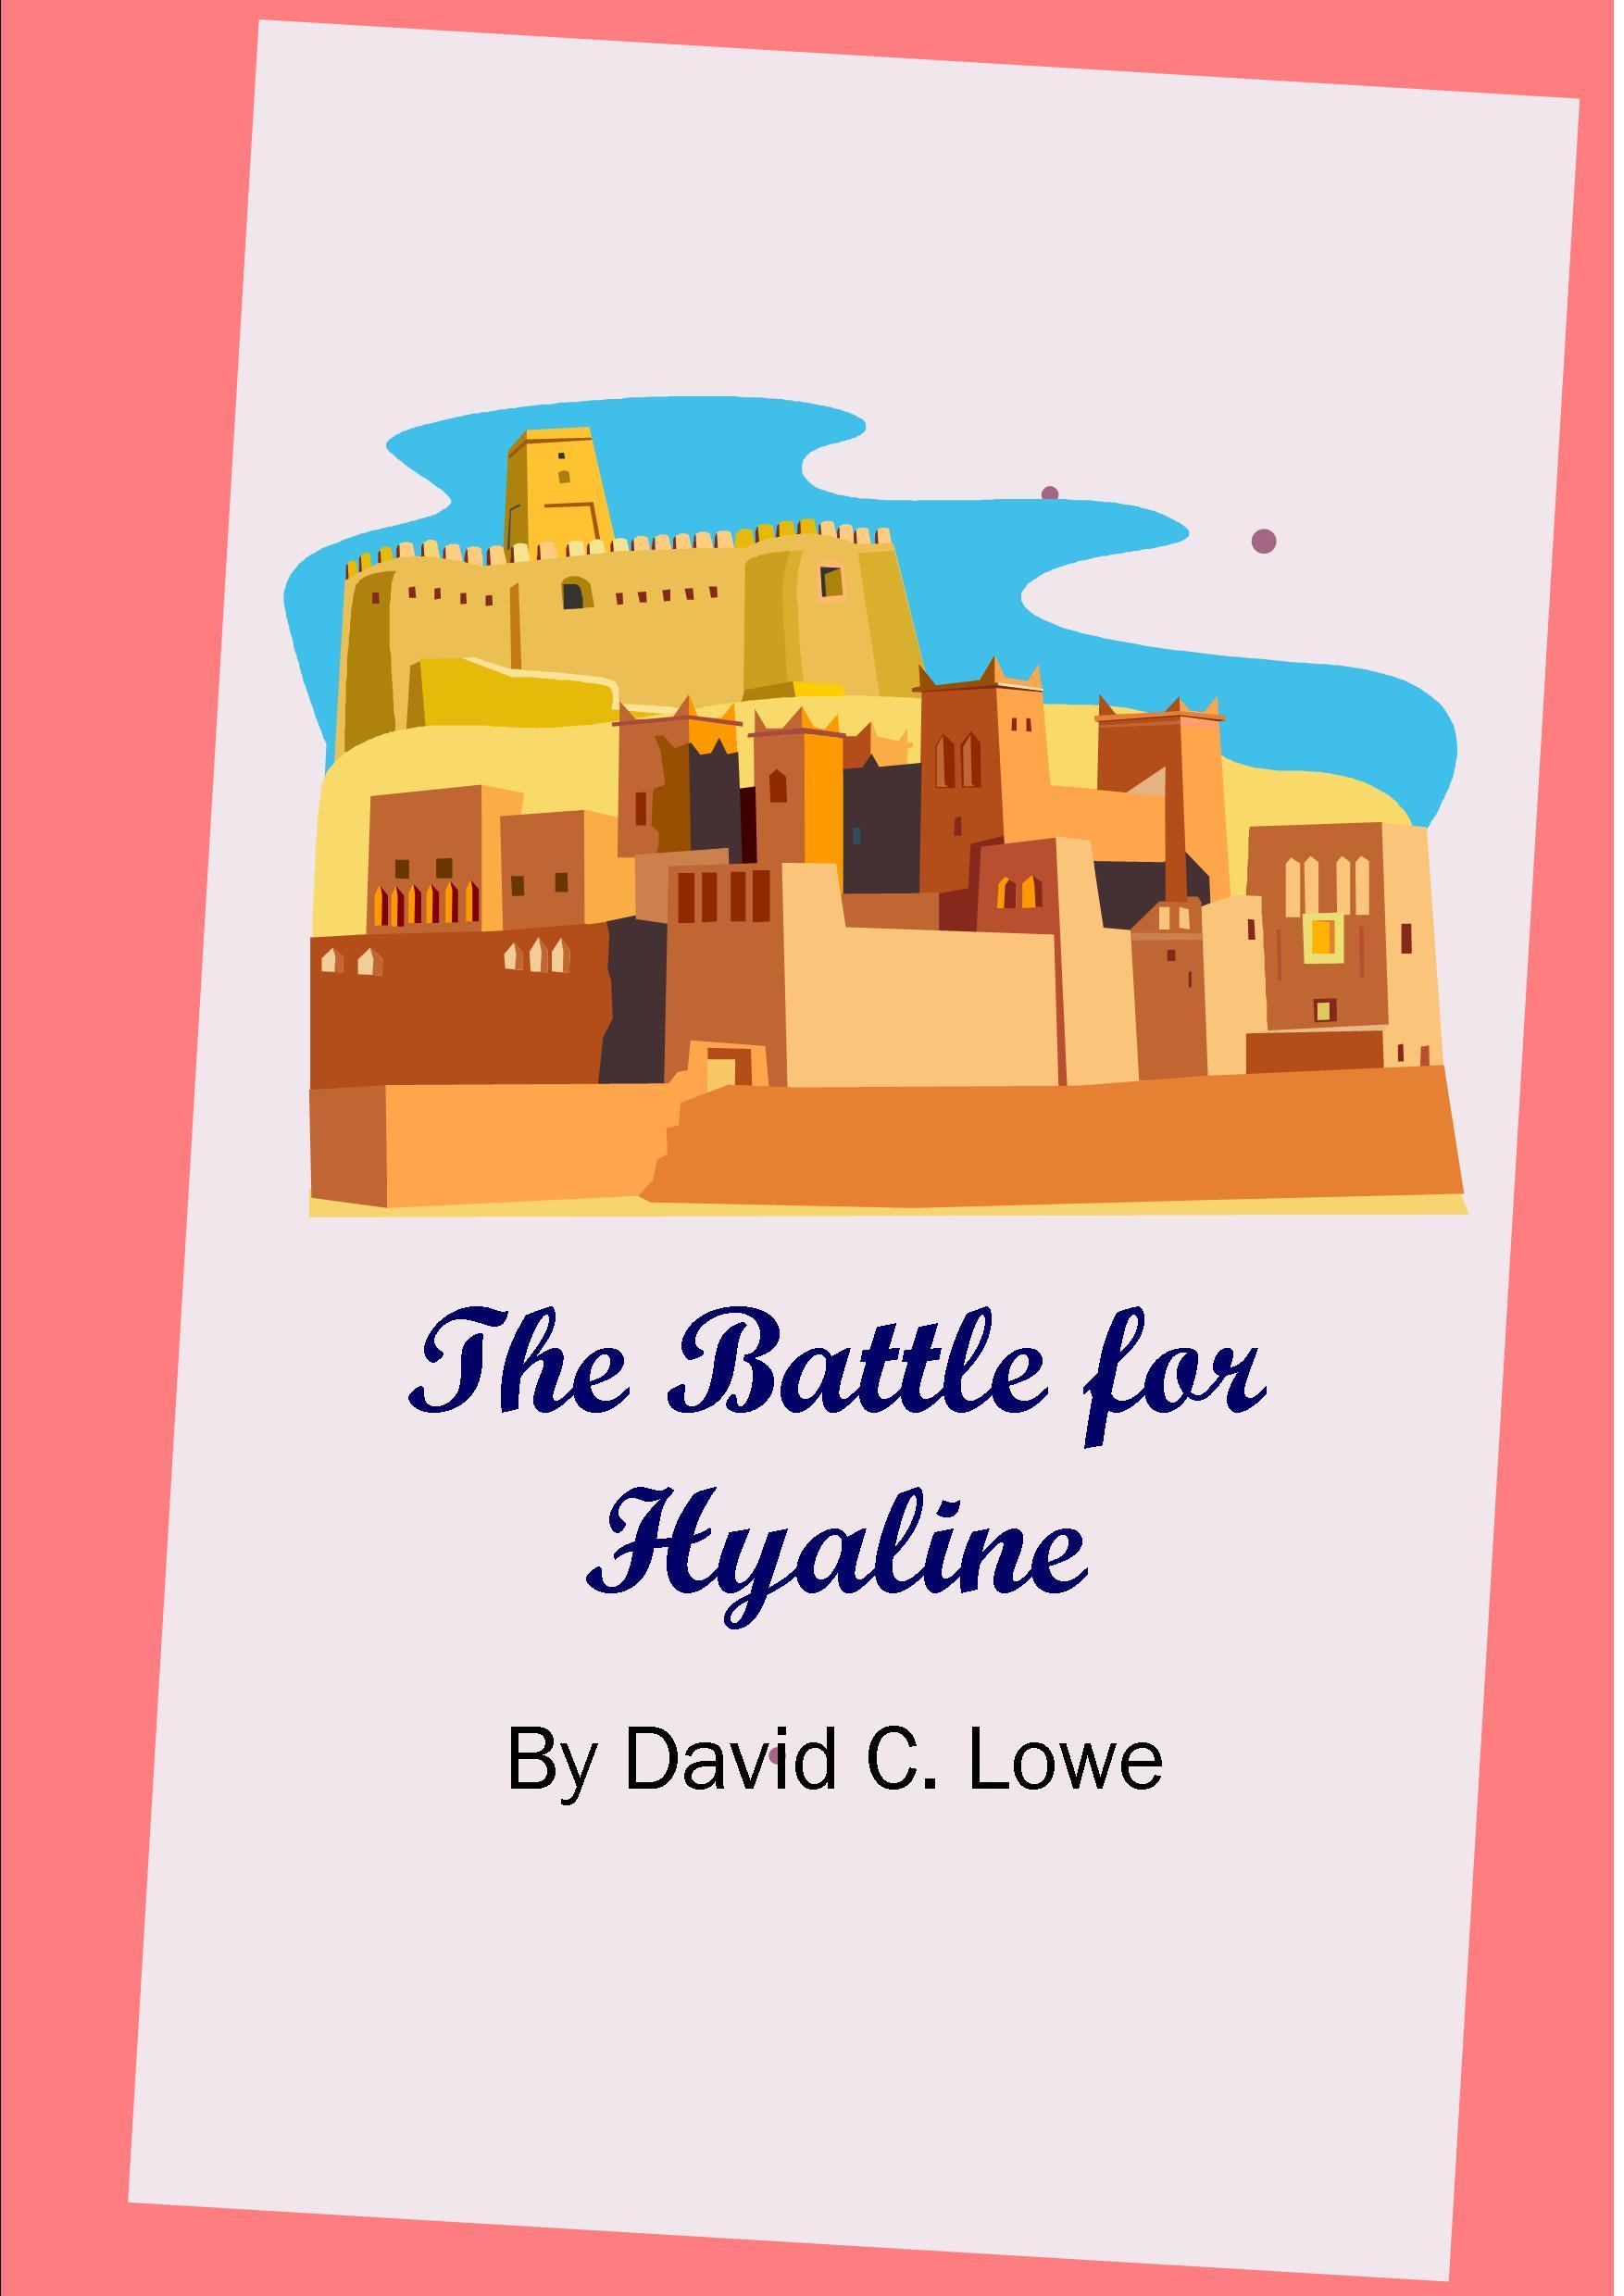 The Battle For Hyaline